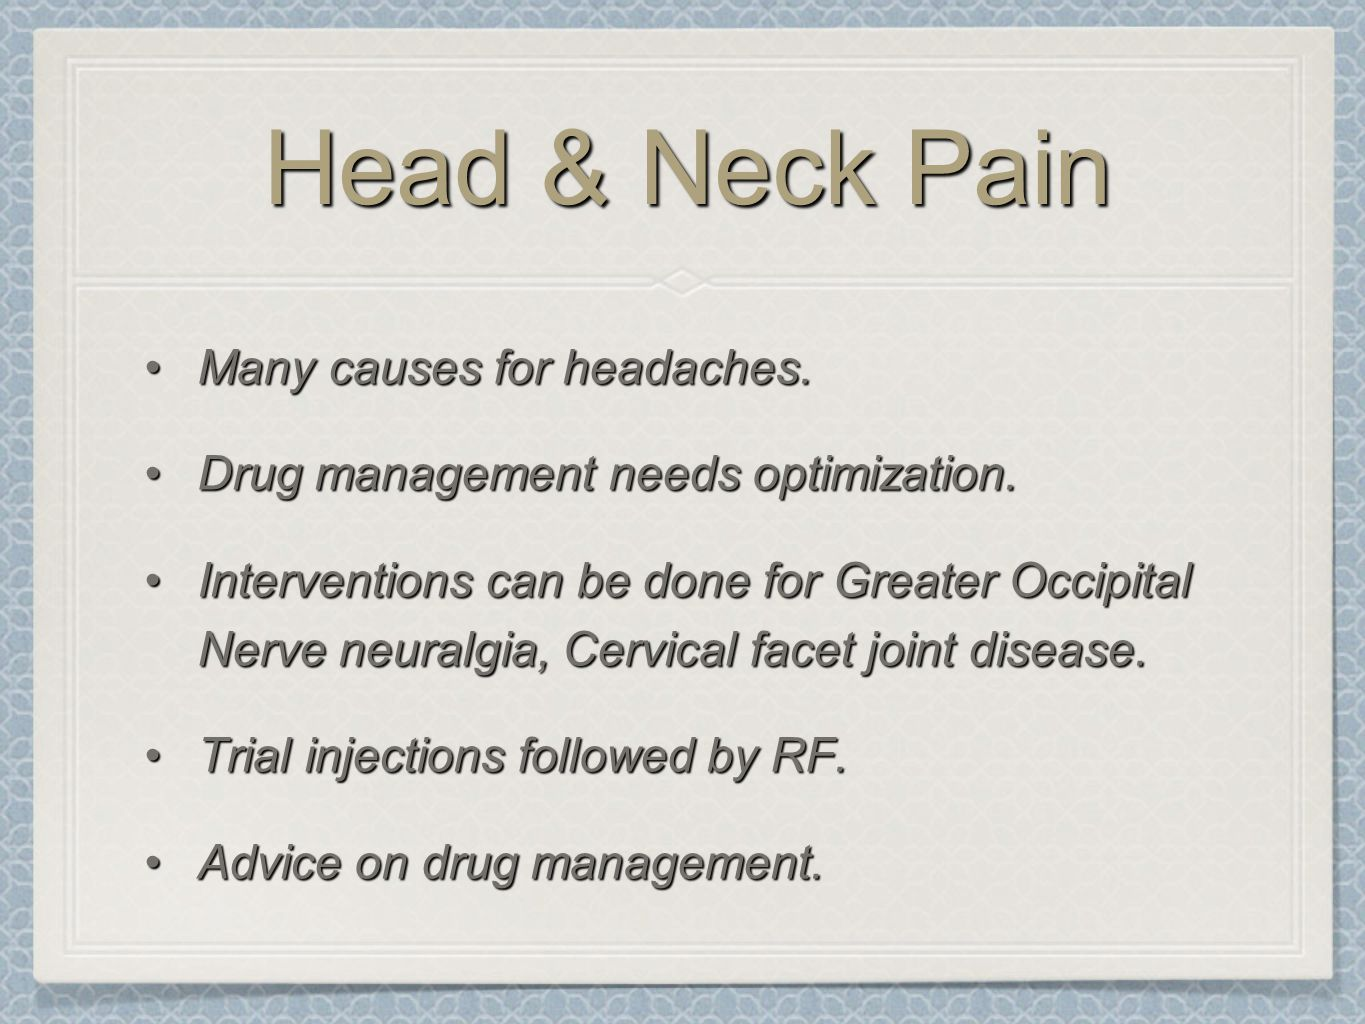 Head & Neck Pain Many causes for headaches.Many causes for headaches. Drug management needs optimization.Drug management needs optimization. Intervent